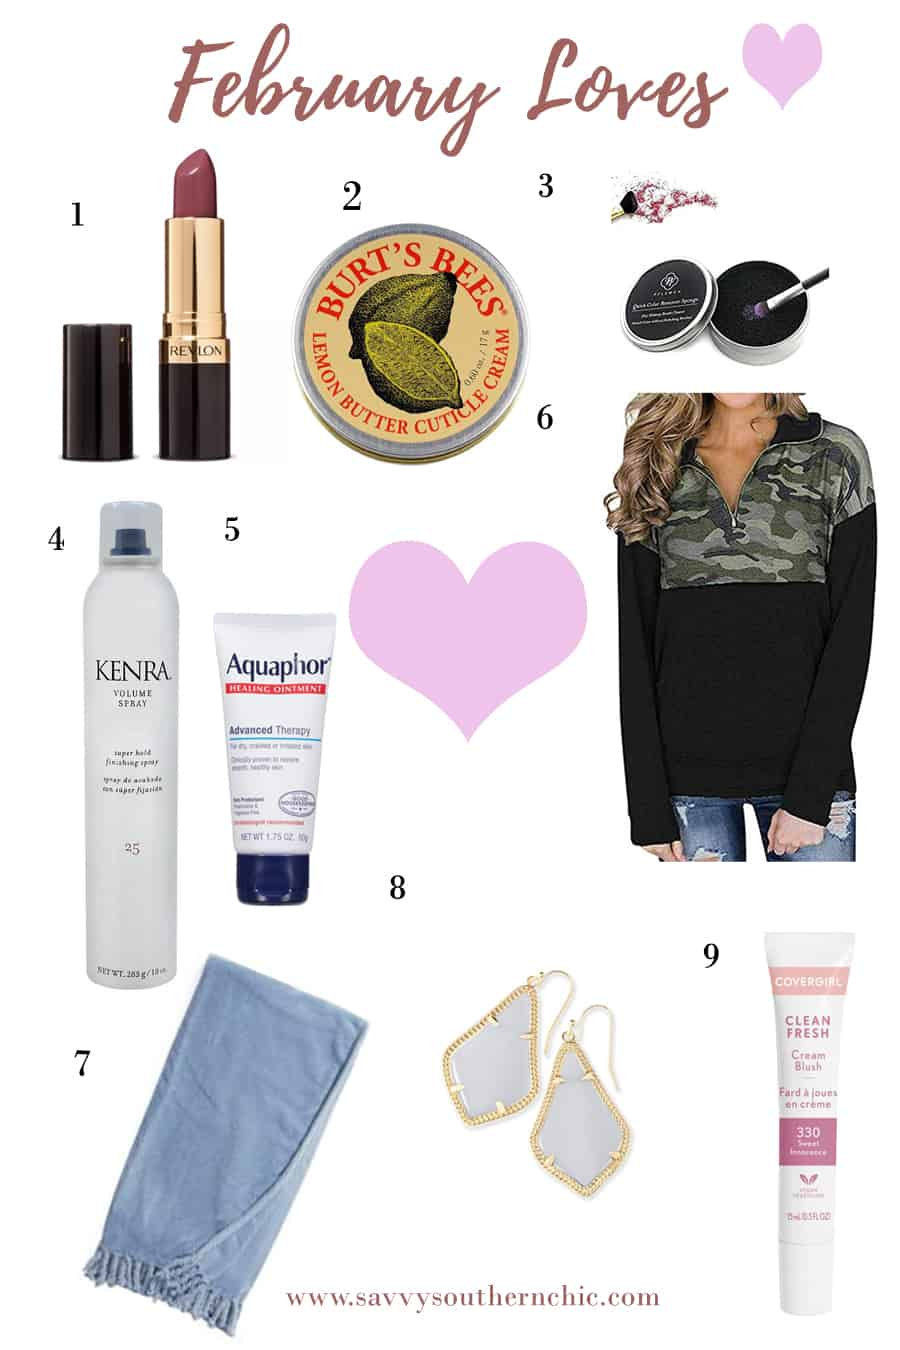 favorite products for February